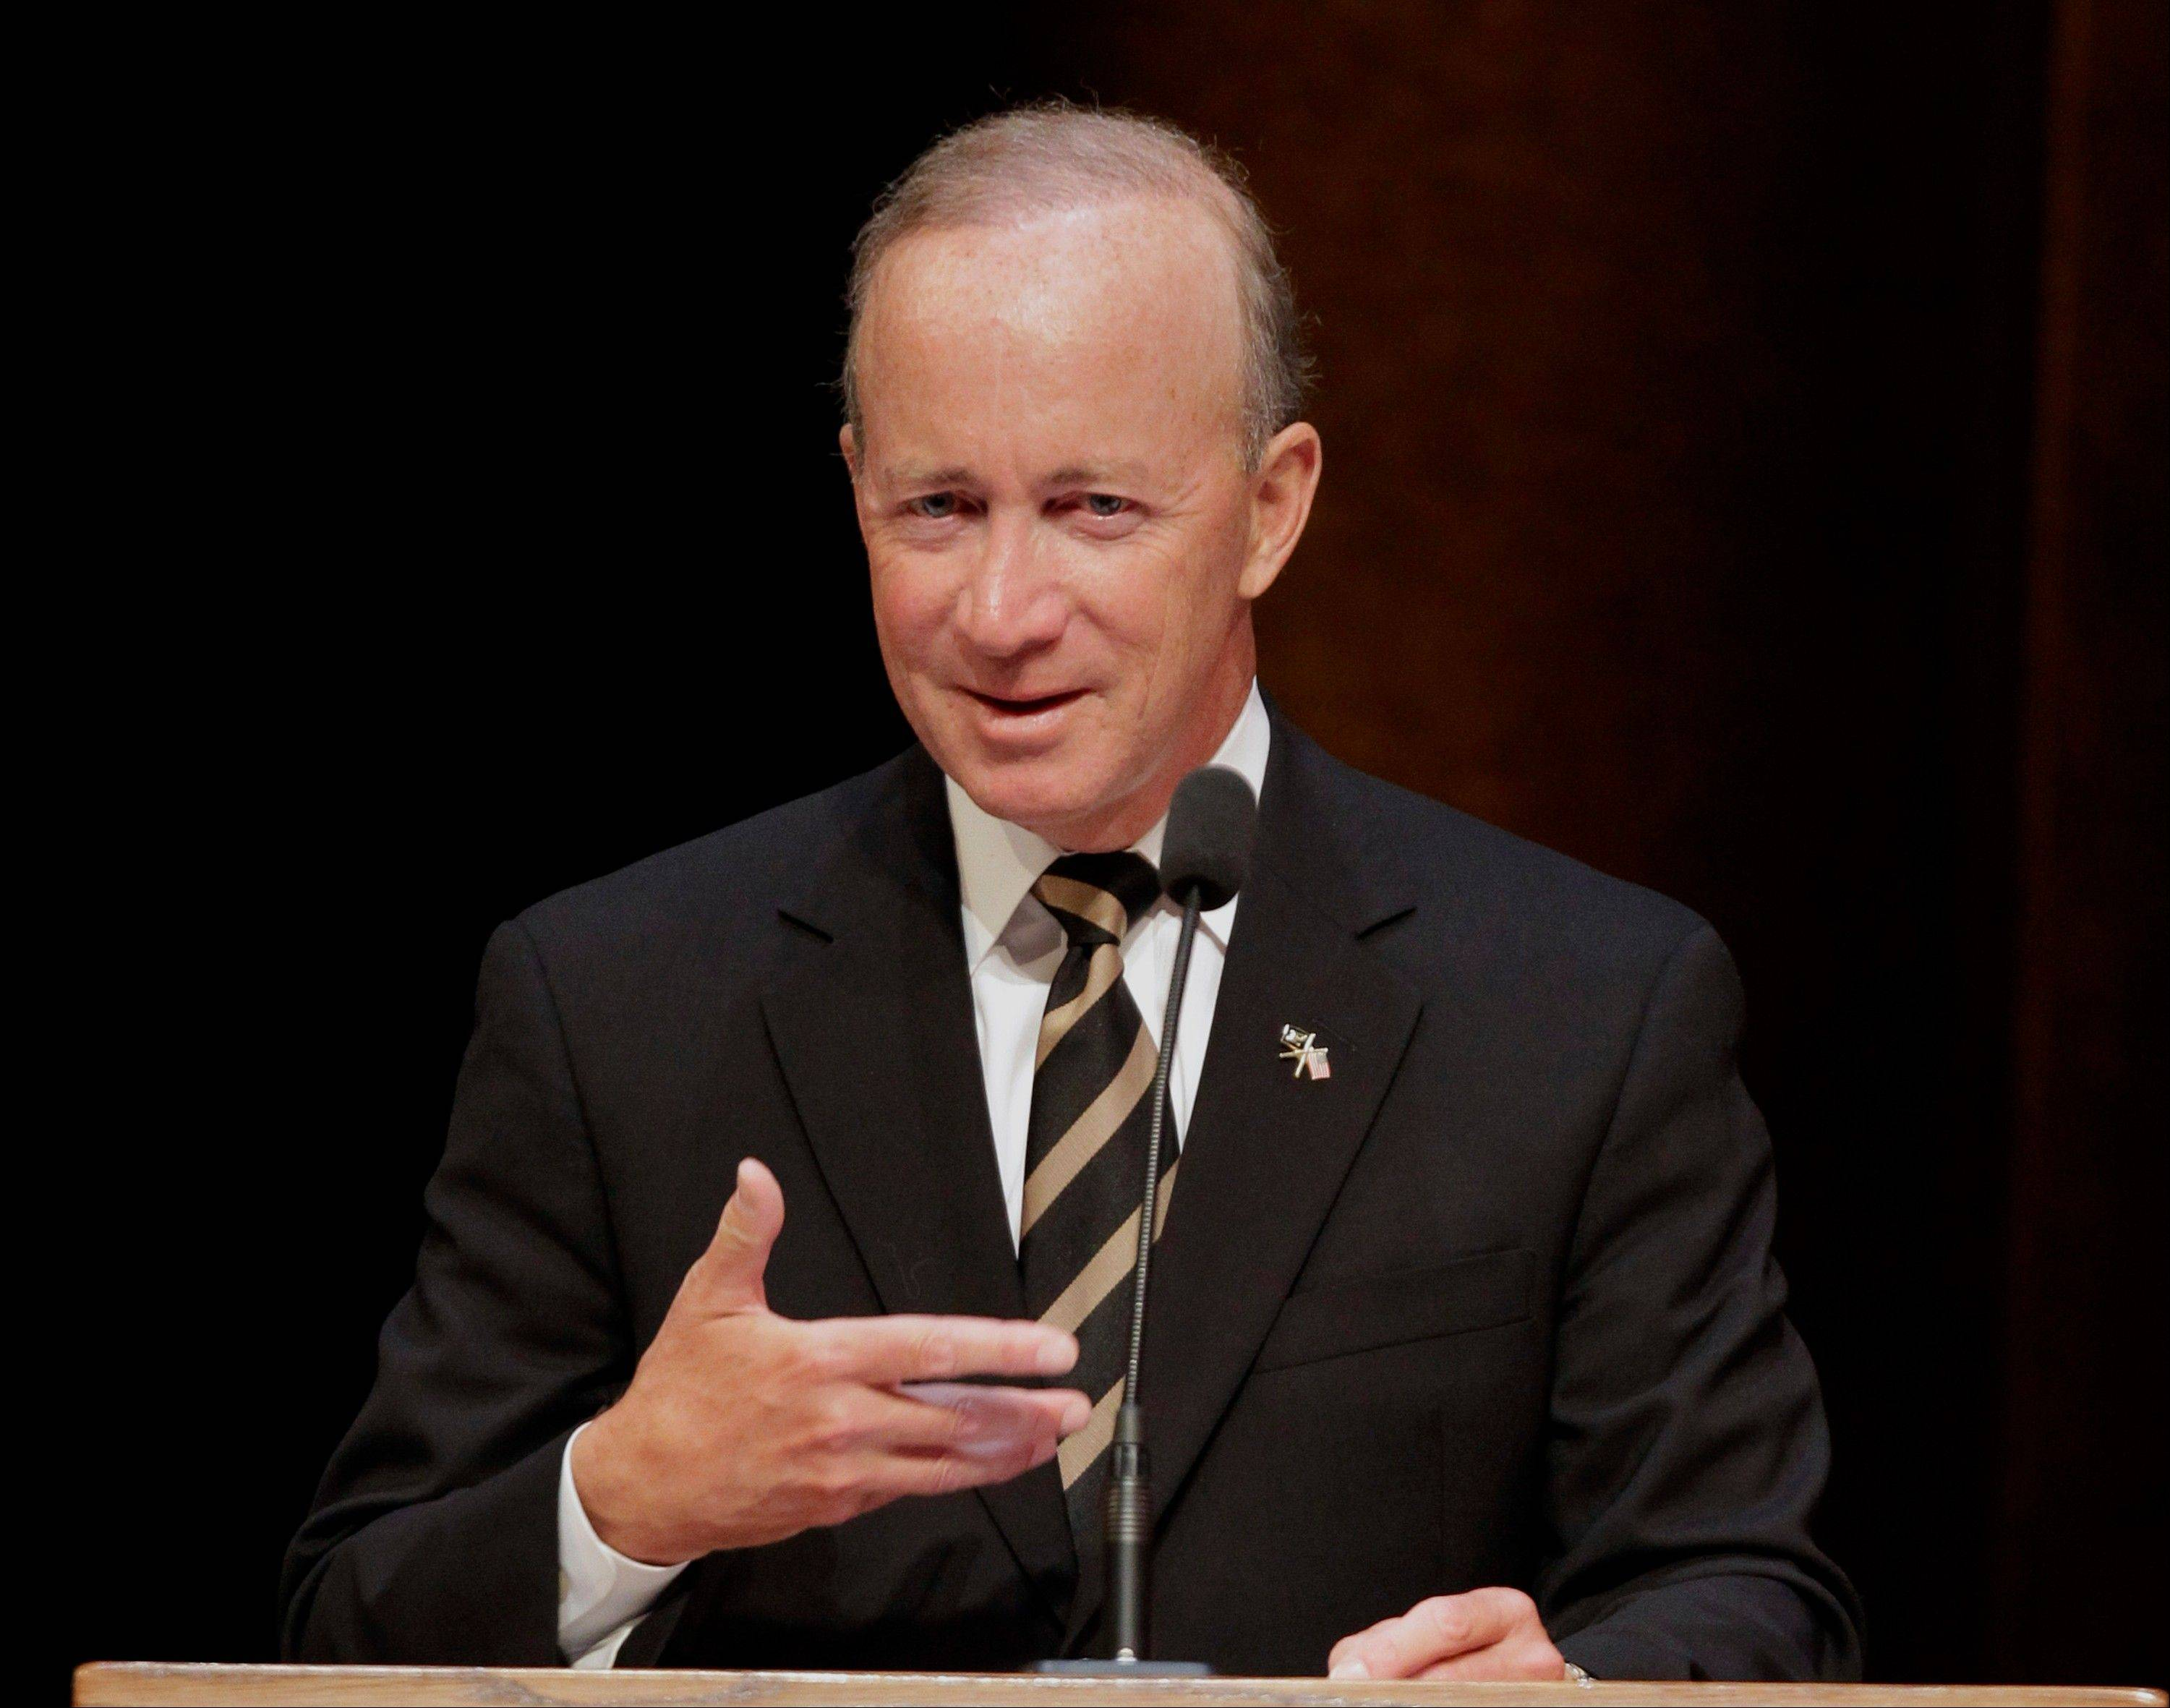 �That wonderful old line (is) that the problem with national standards is: Republicans don�t do �national� and Democrats don�t do �standards,�� said Mitch Daniels, the president of Purdue University and former Republican governor of Indiana. �So the Common Core kind of gets it from both ends a little bit.�